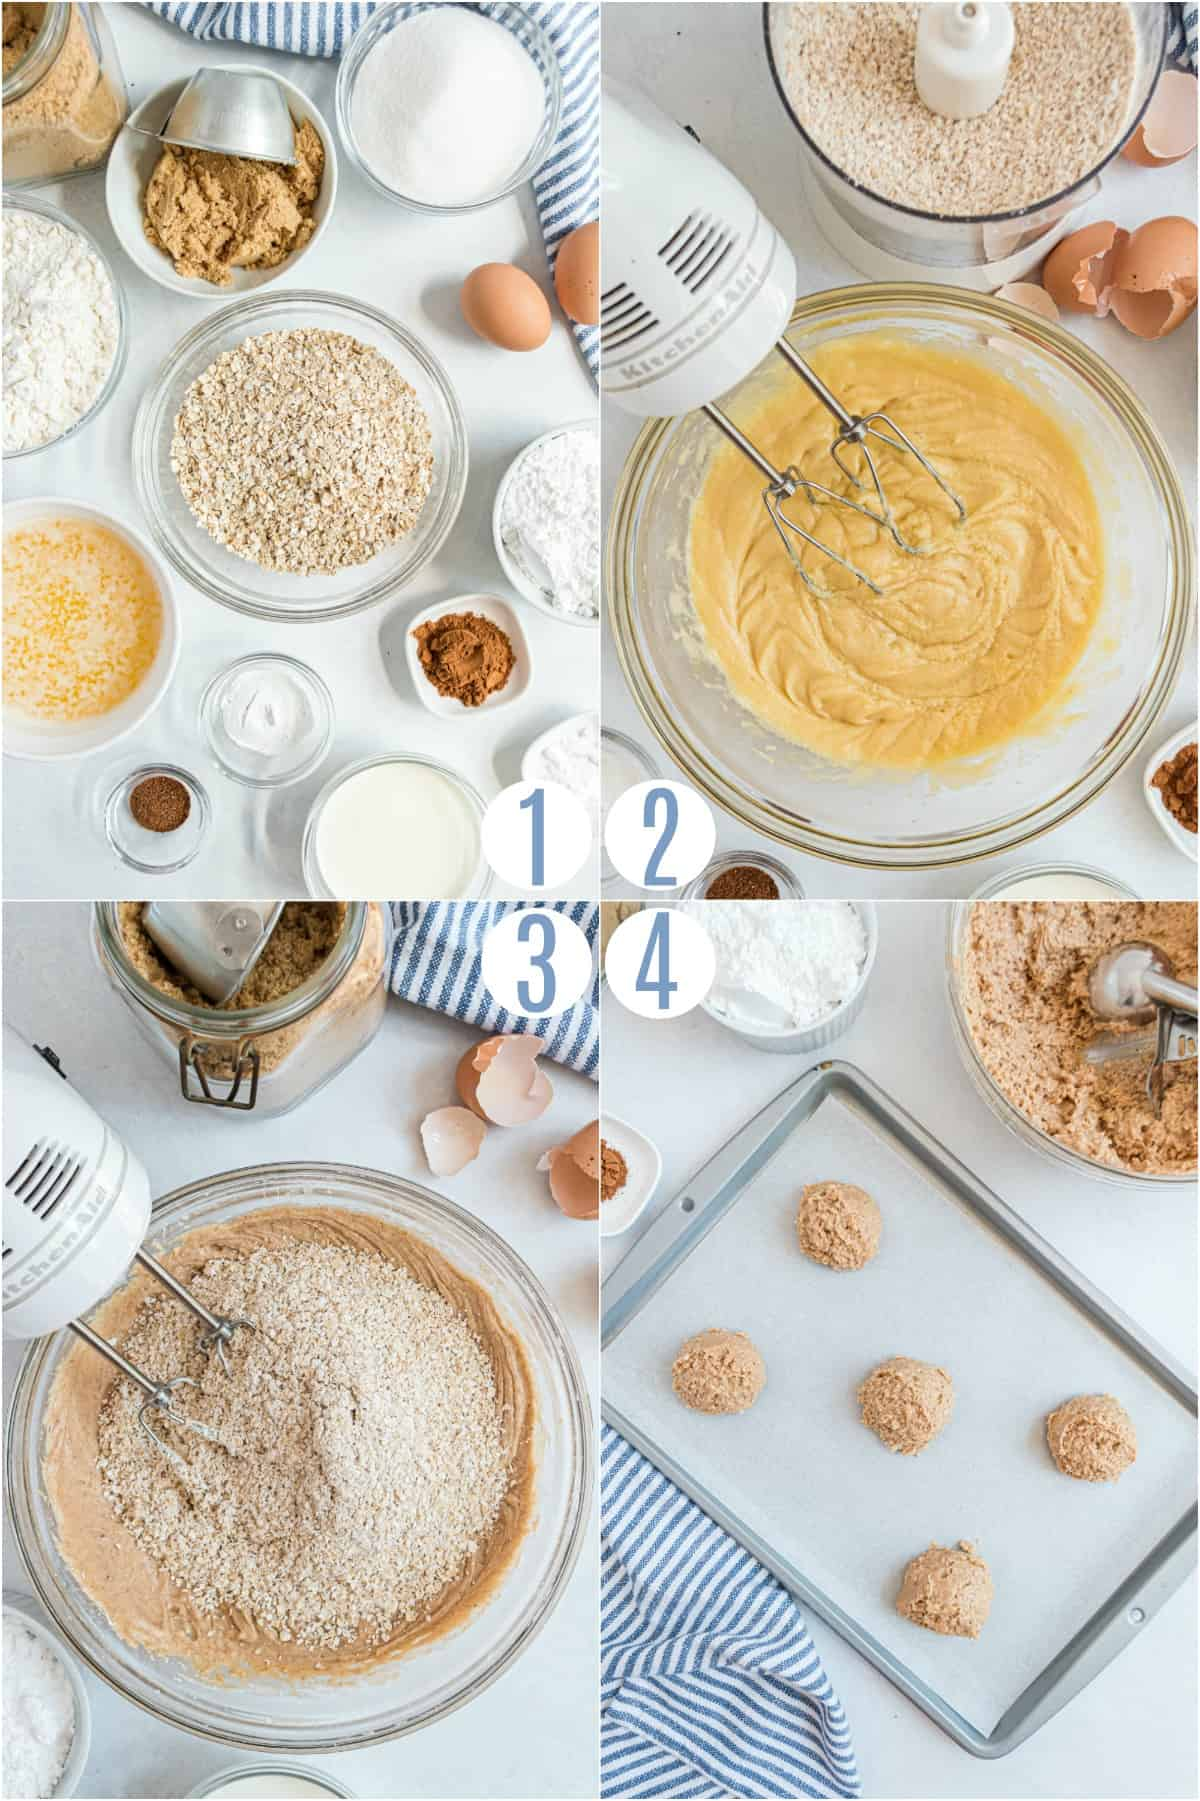 Step by step photos showing how to make iced oatmeal cookies from scratch.